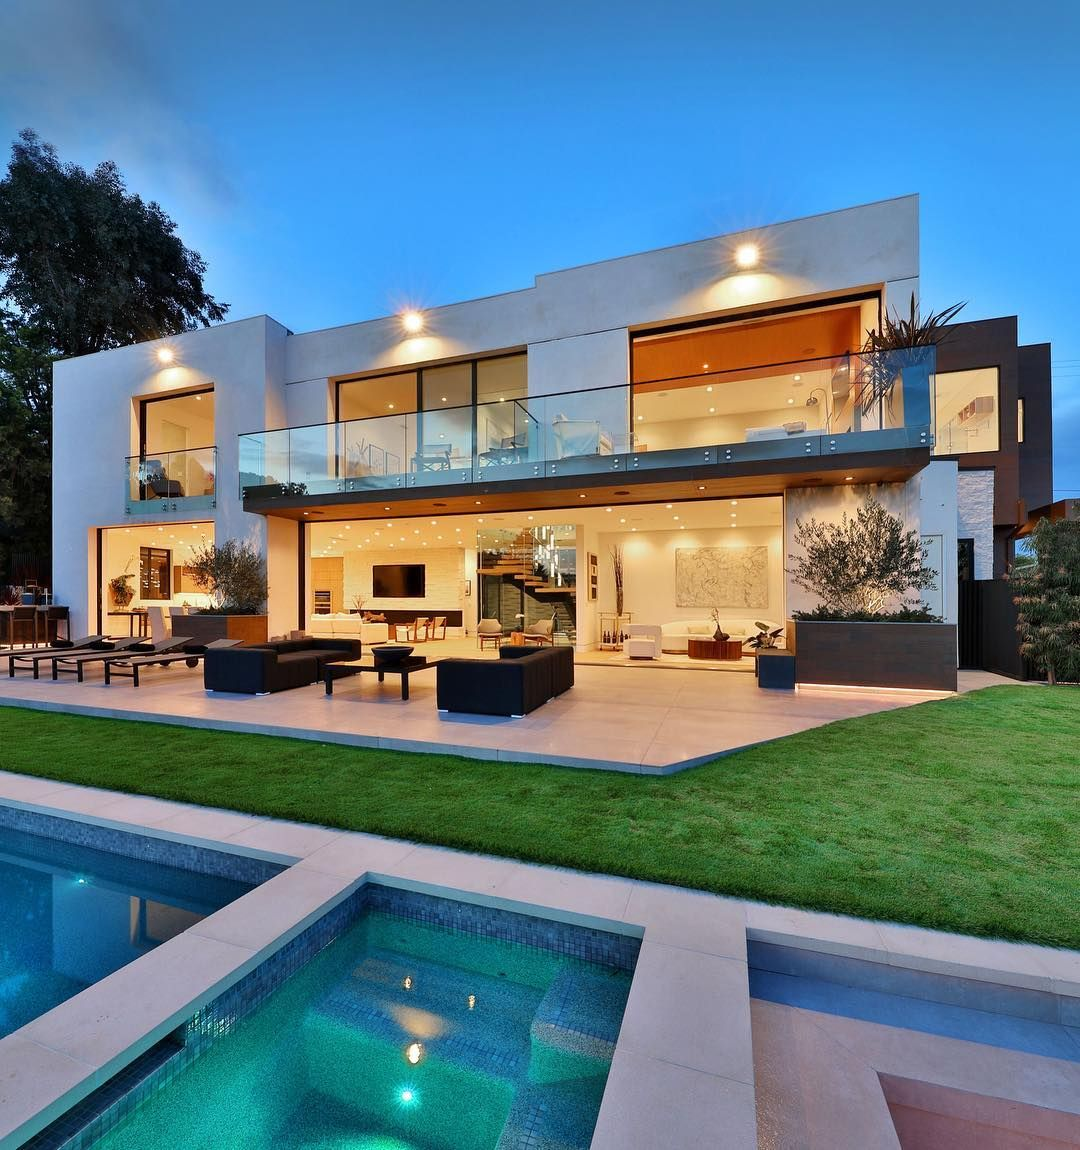 ( @davidrothblum ) Absolutely Stunning Home Located In Brentwood, Los  Angeles. For More Amazing Homes For Sale Follow @davidrothblumu2026